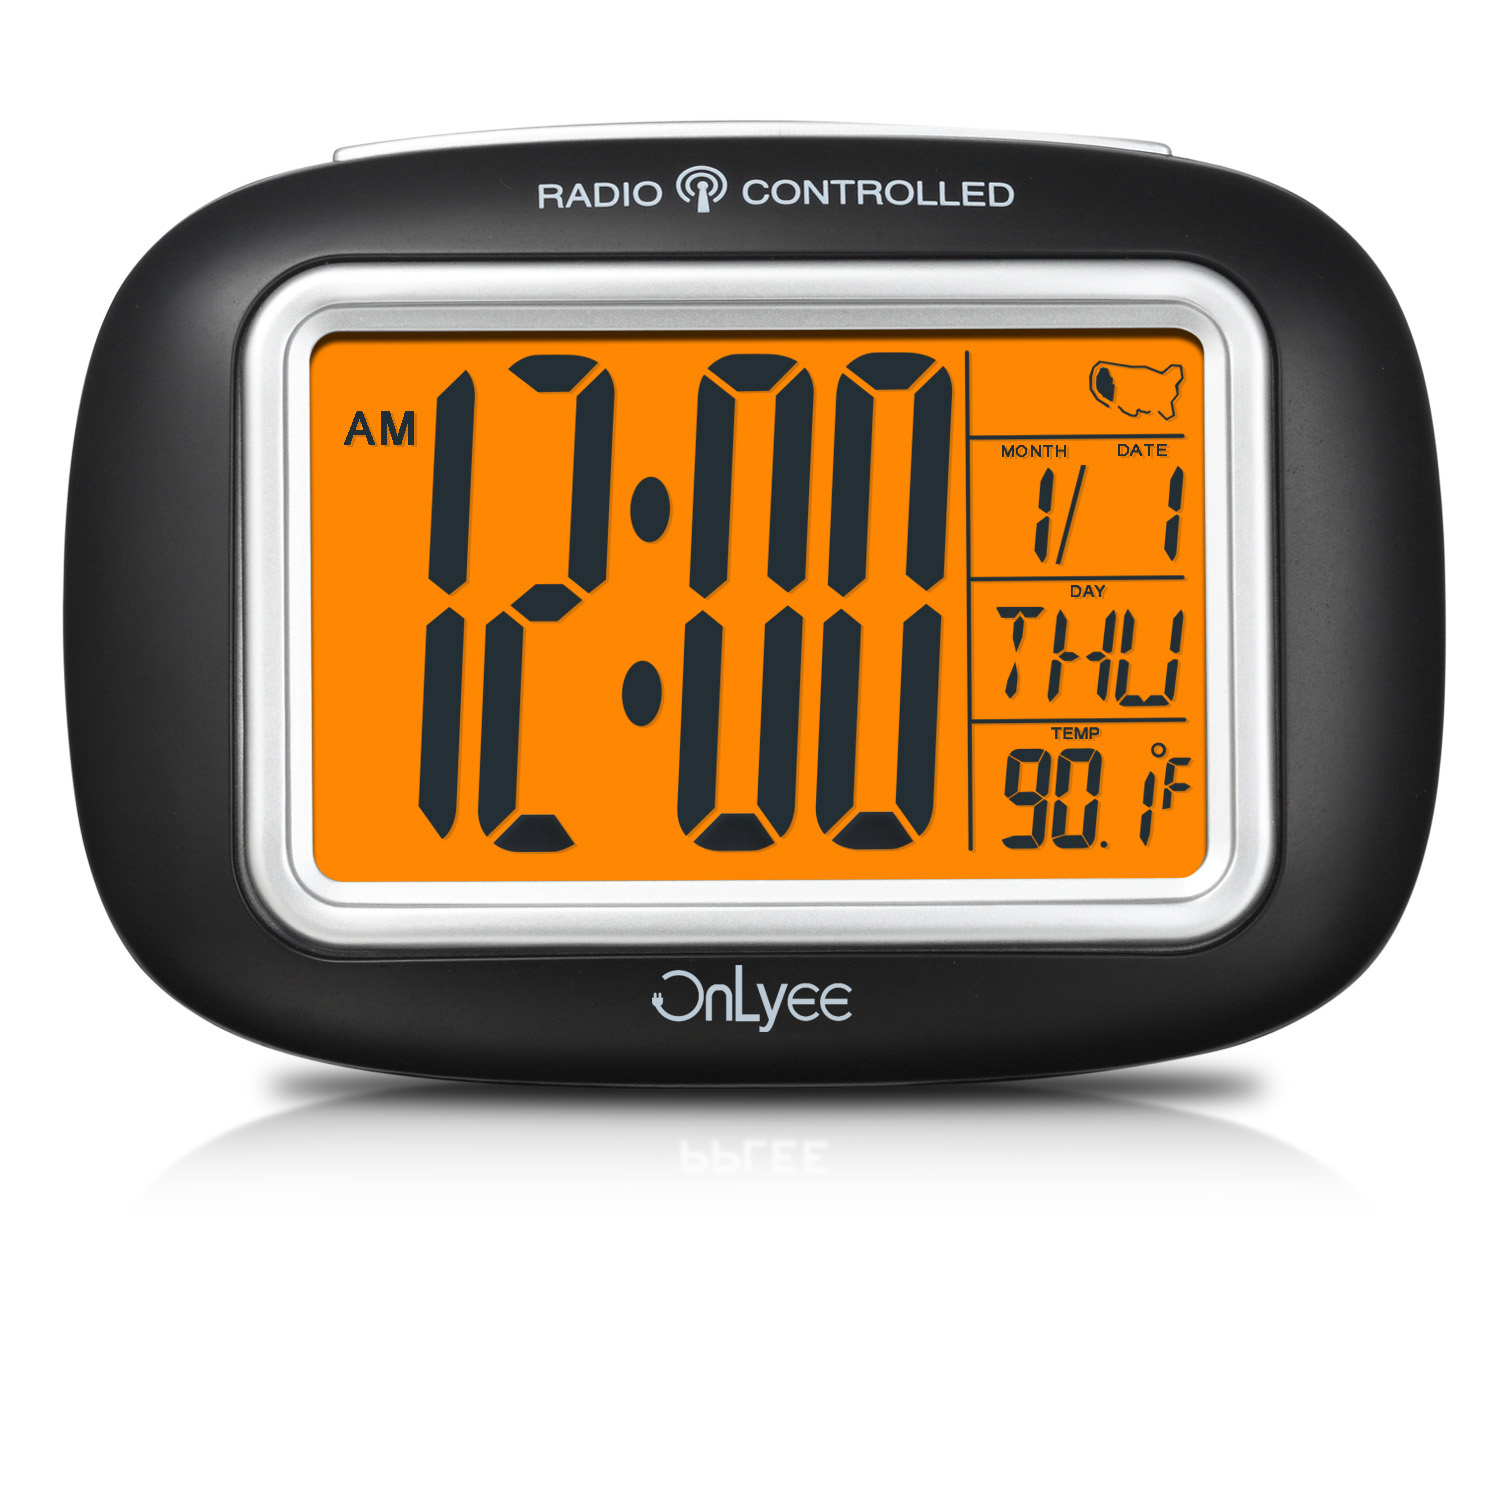 OnLyee  Radio Controlled Atomic LCD Digital Alarm Clock With Calendar,Indoor Temperature,Date(Batteries Included) image 1